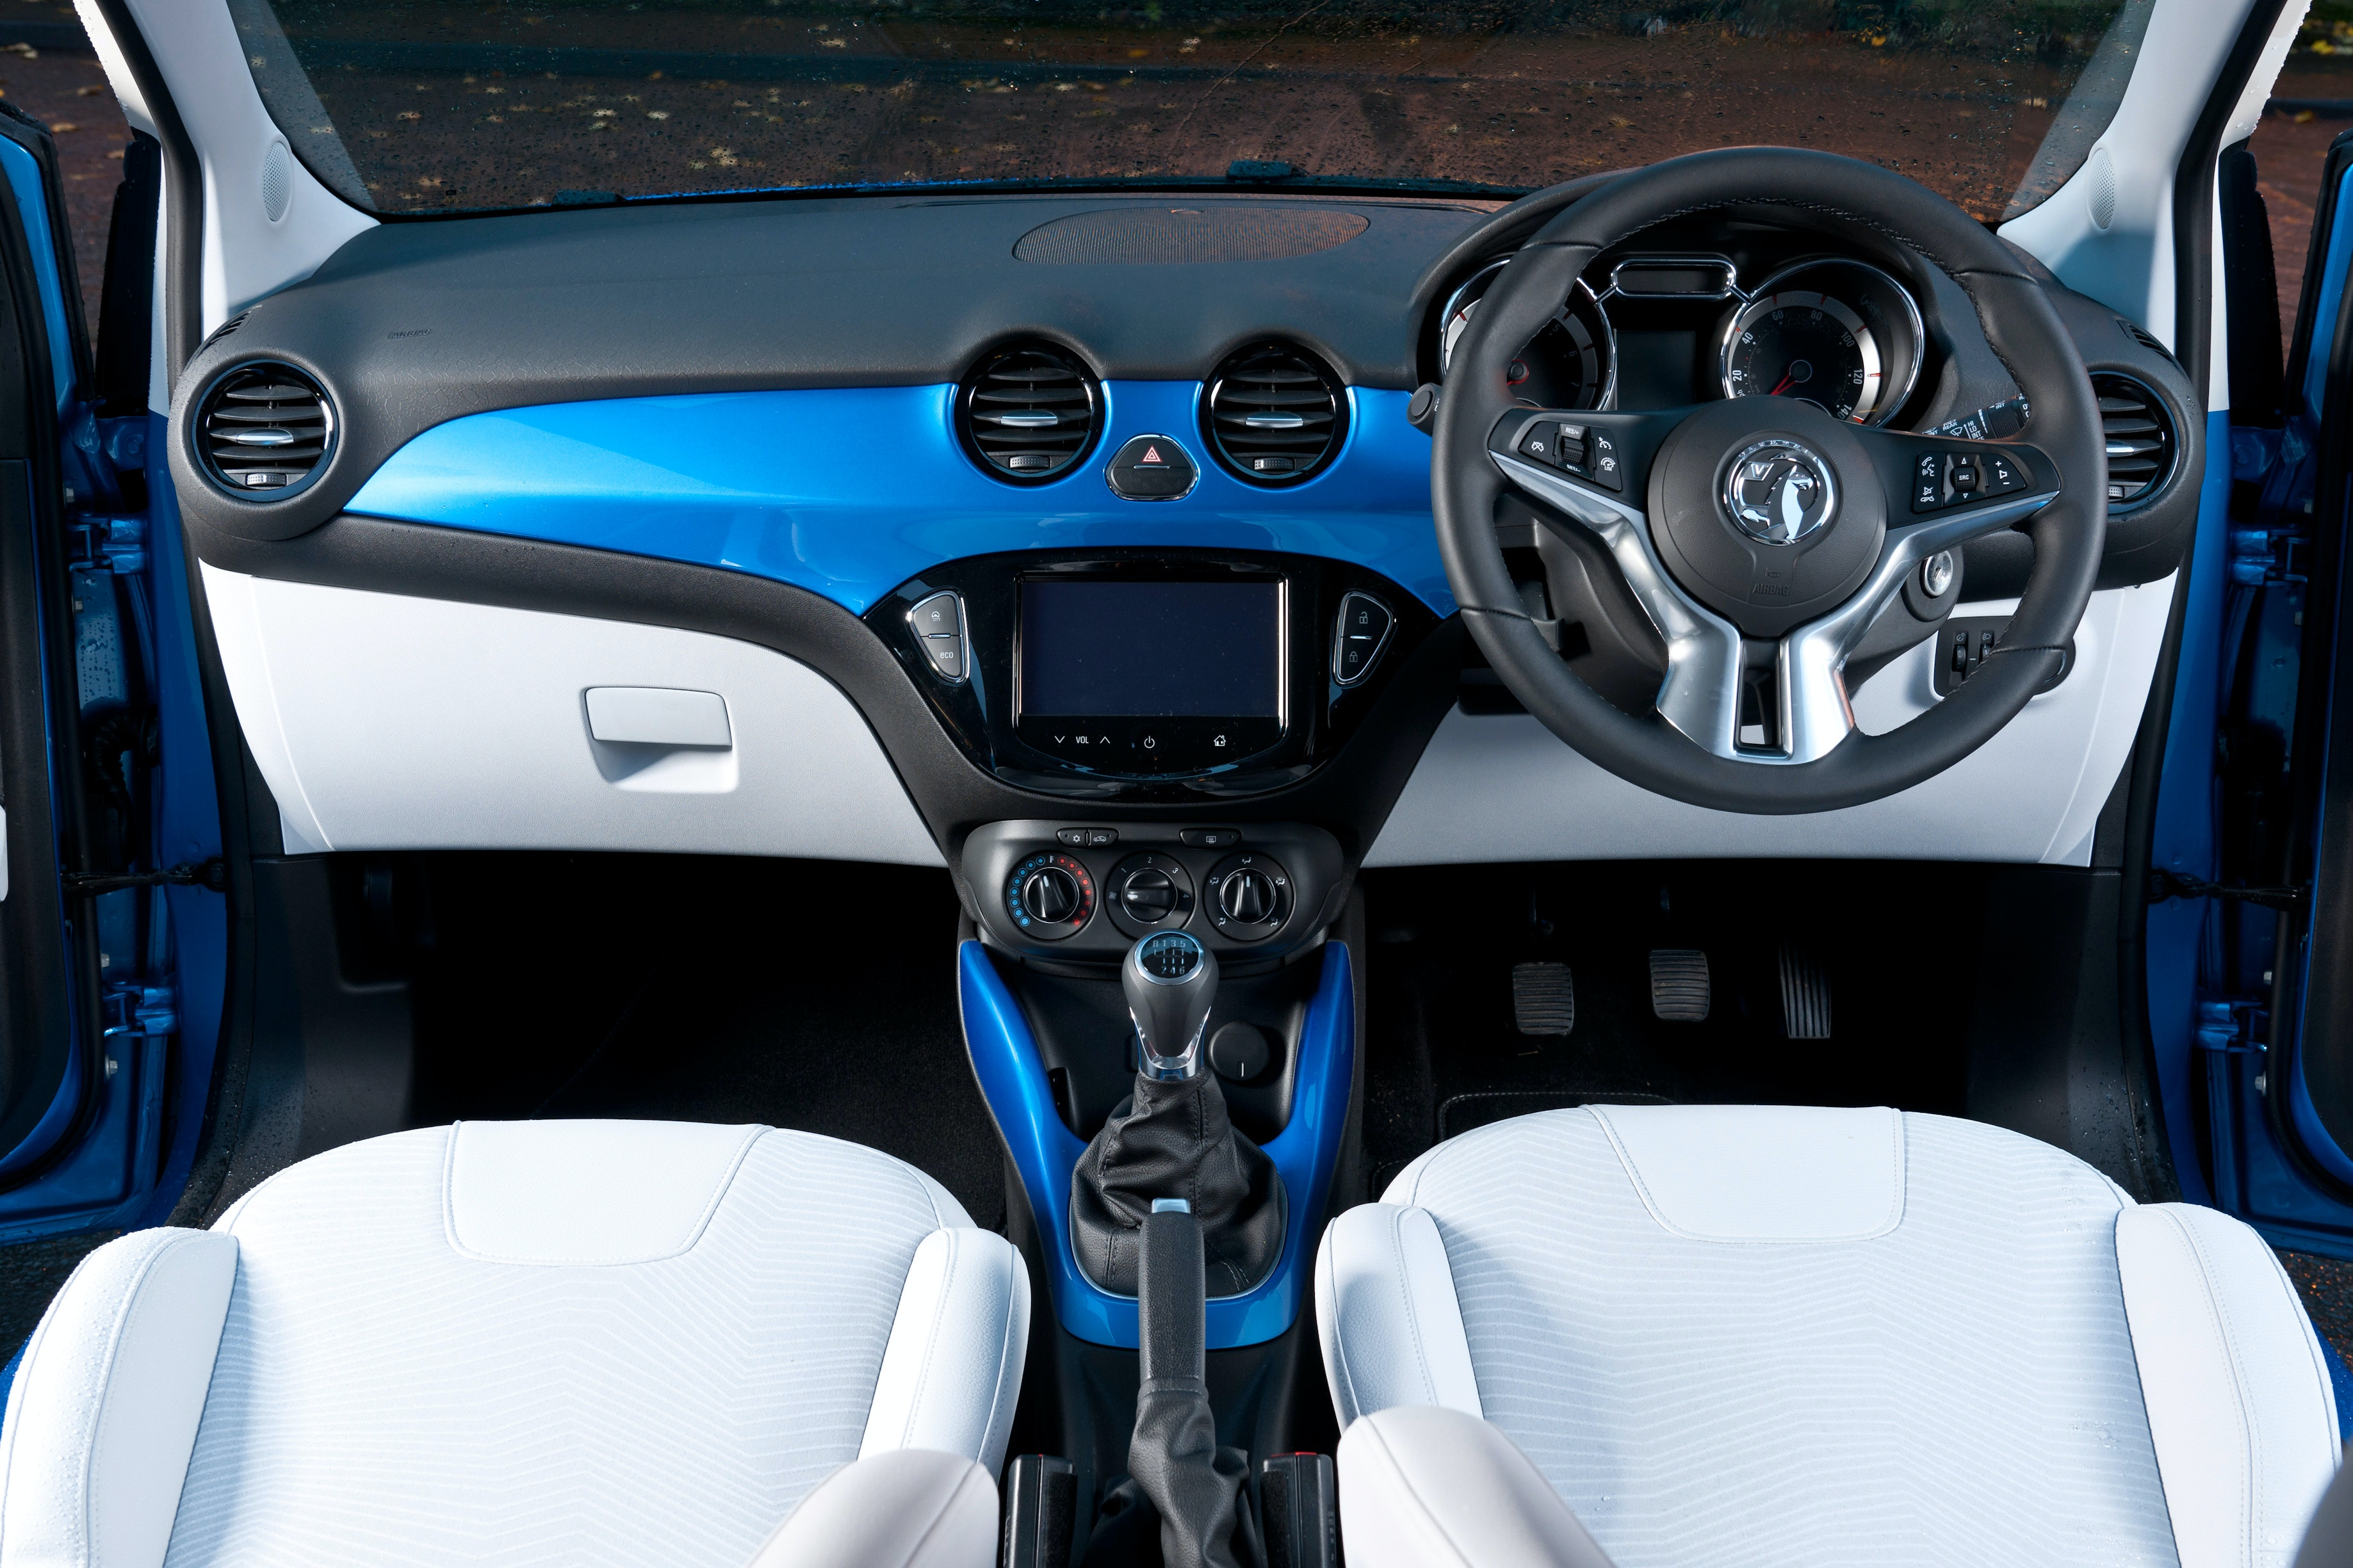 The Adam's interior is one of its best points, smart and full of colour